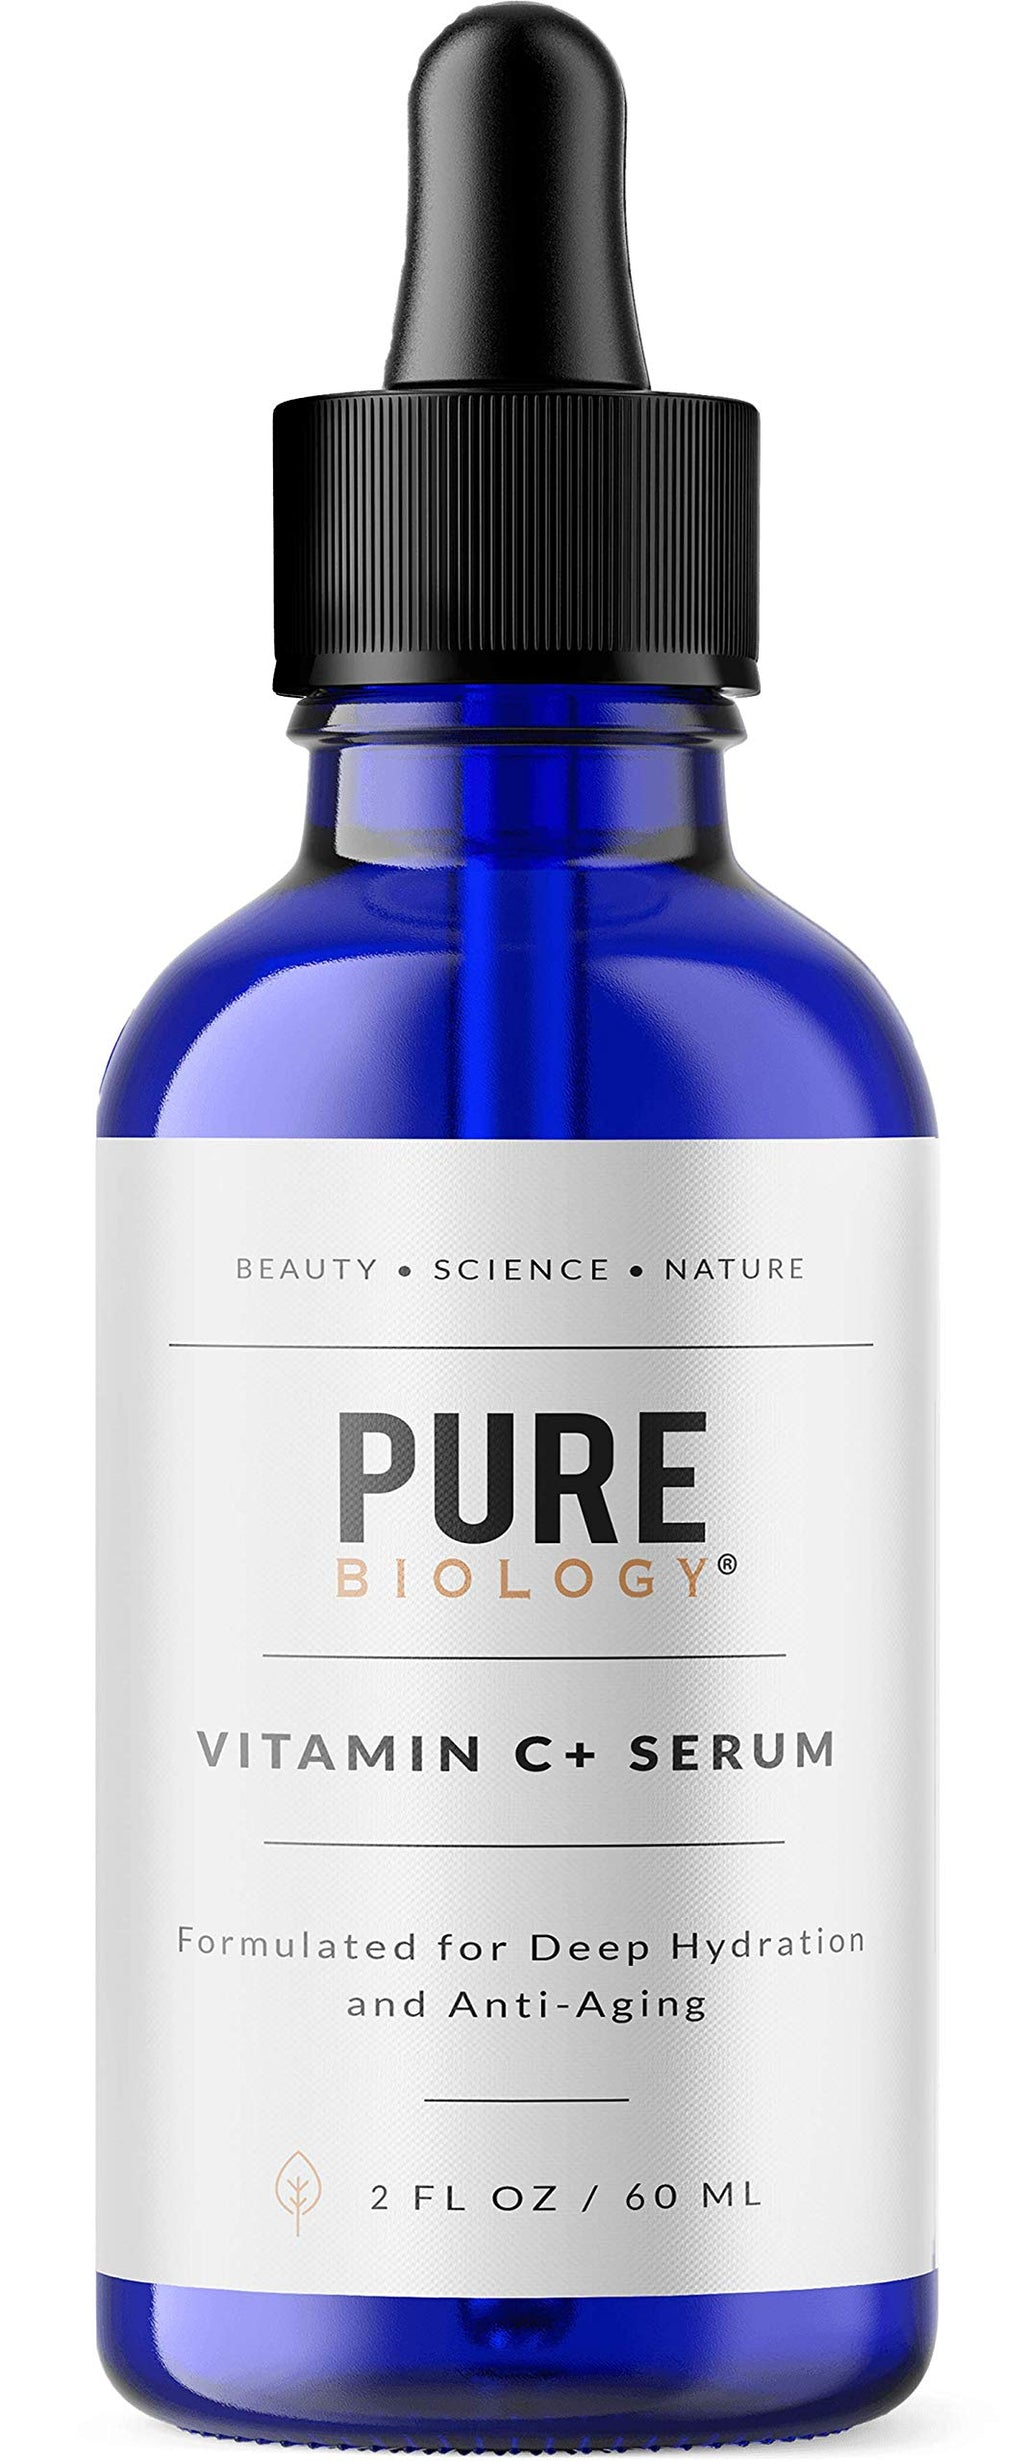 Pure Biology Premium Vitamin C Serum for Face with Hyaluronic Acid & Vitamin E, Brightening Antioxidant Serum for Face, Acne and Dark Spot Corrector, Skin Care for Men & Women (2 oz) 2 Ounce